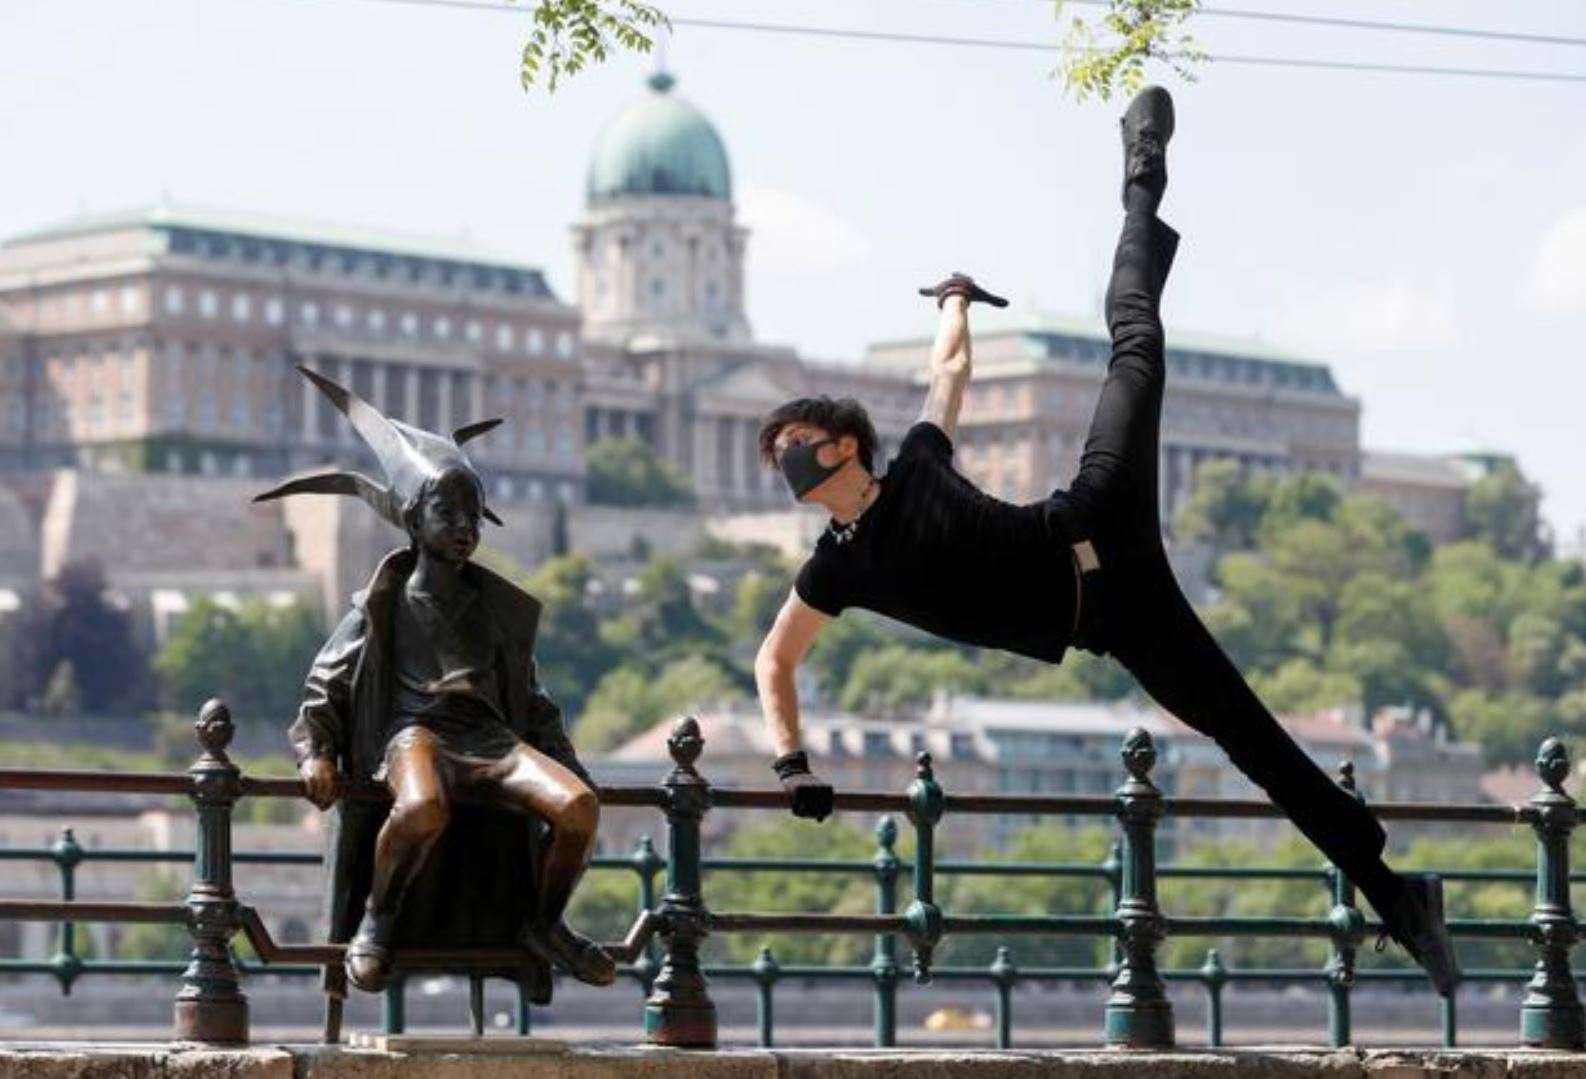 COVID strains: Dancer performs 'virus melody' in empty Budapest square